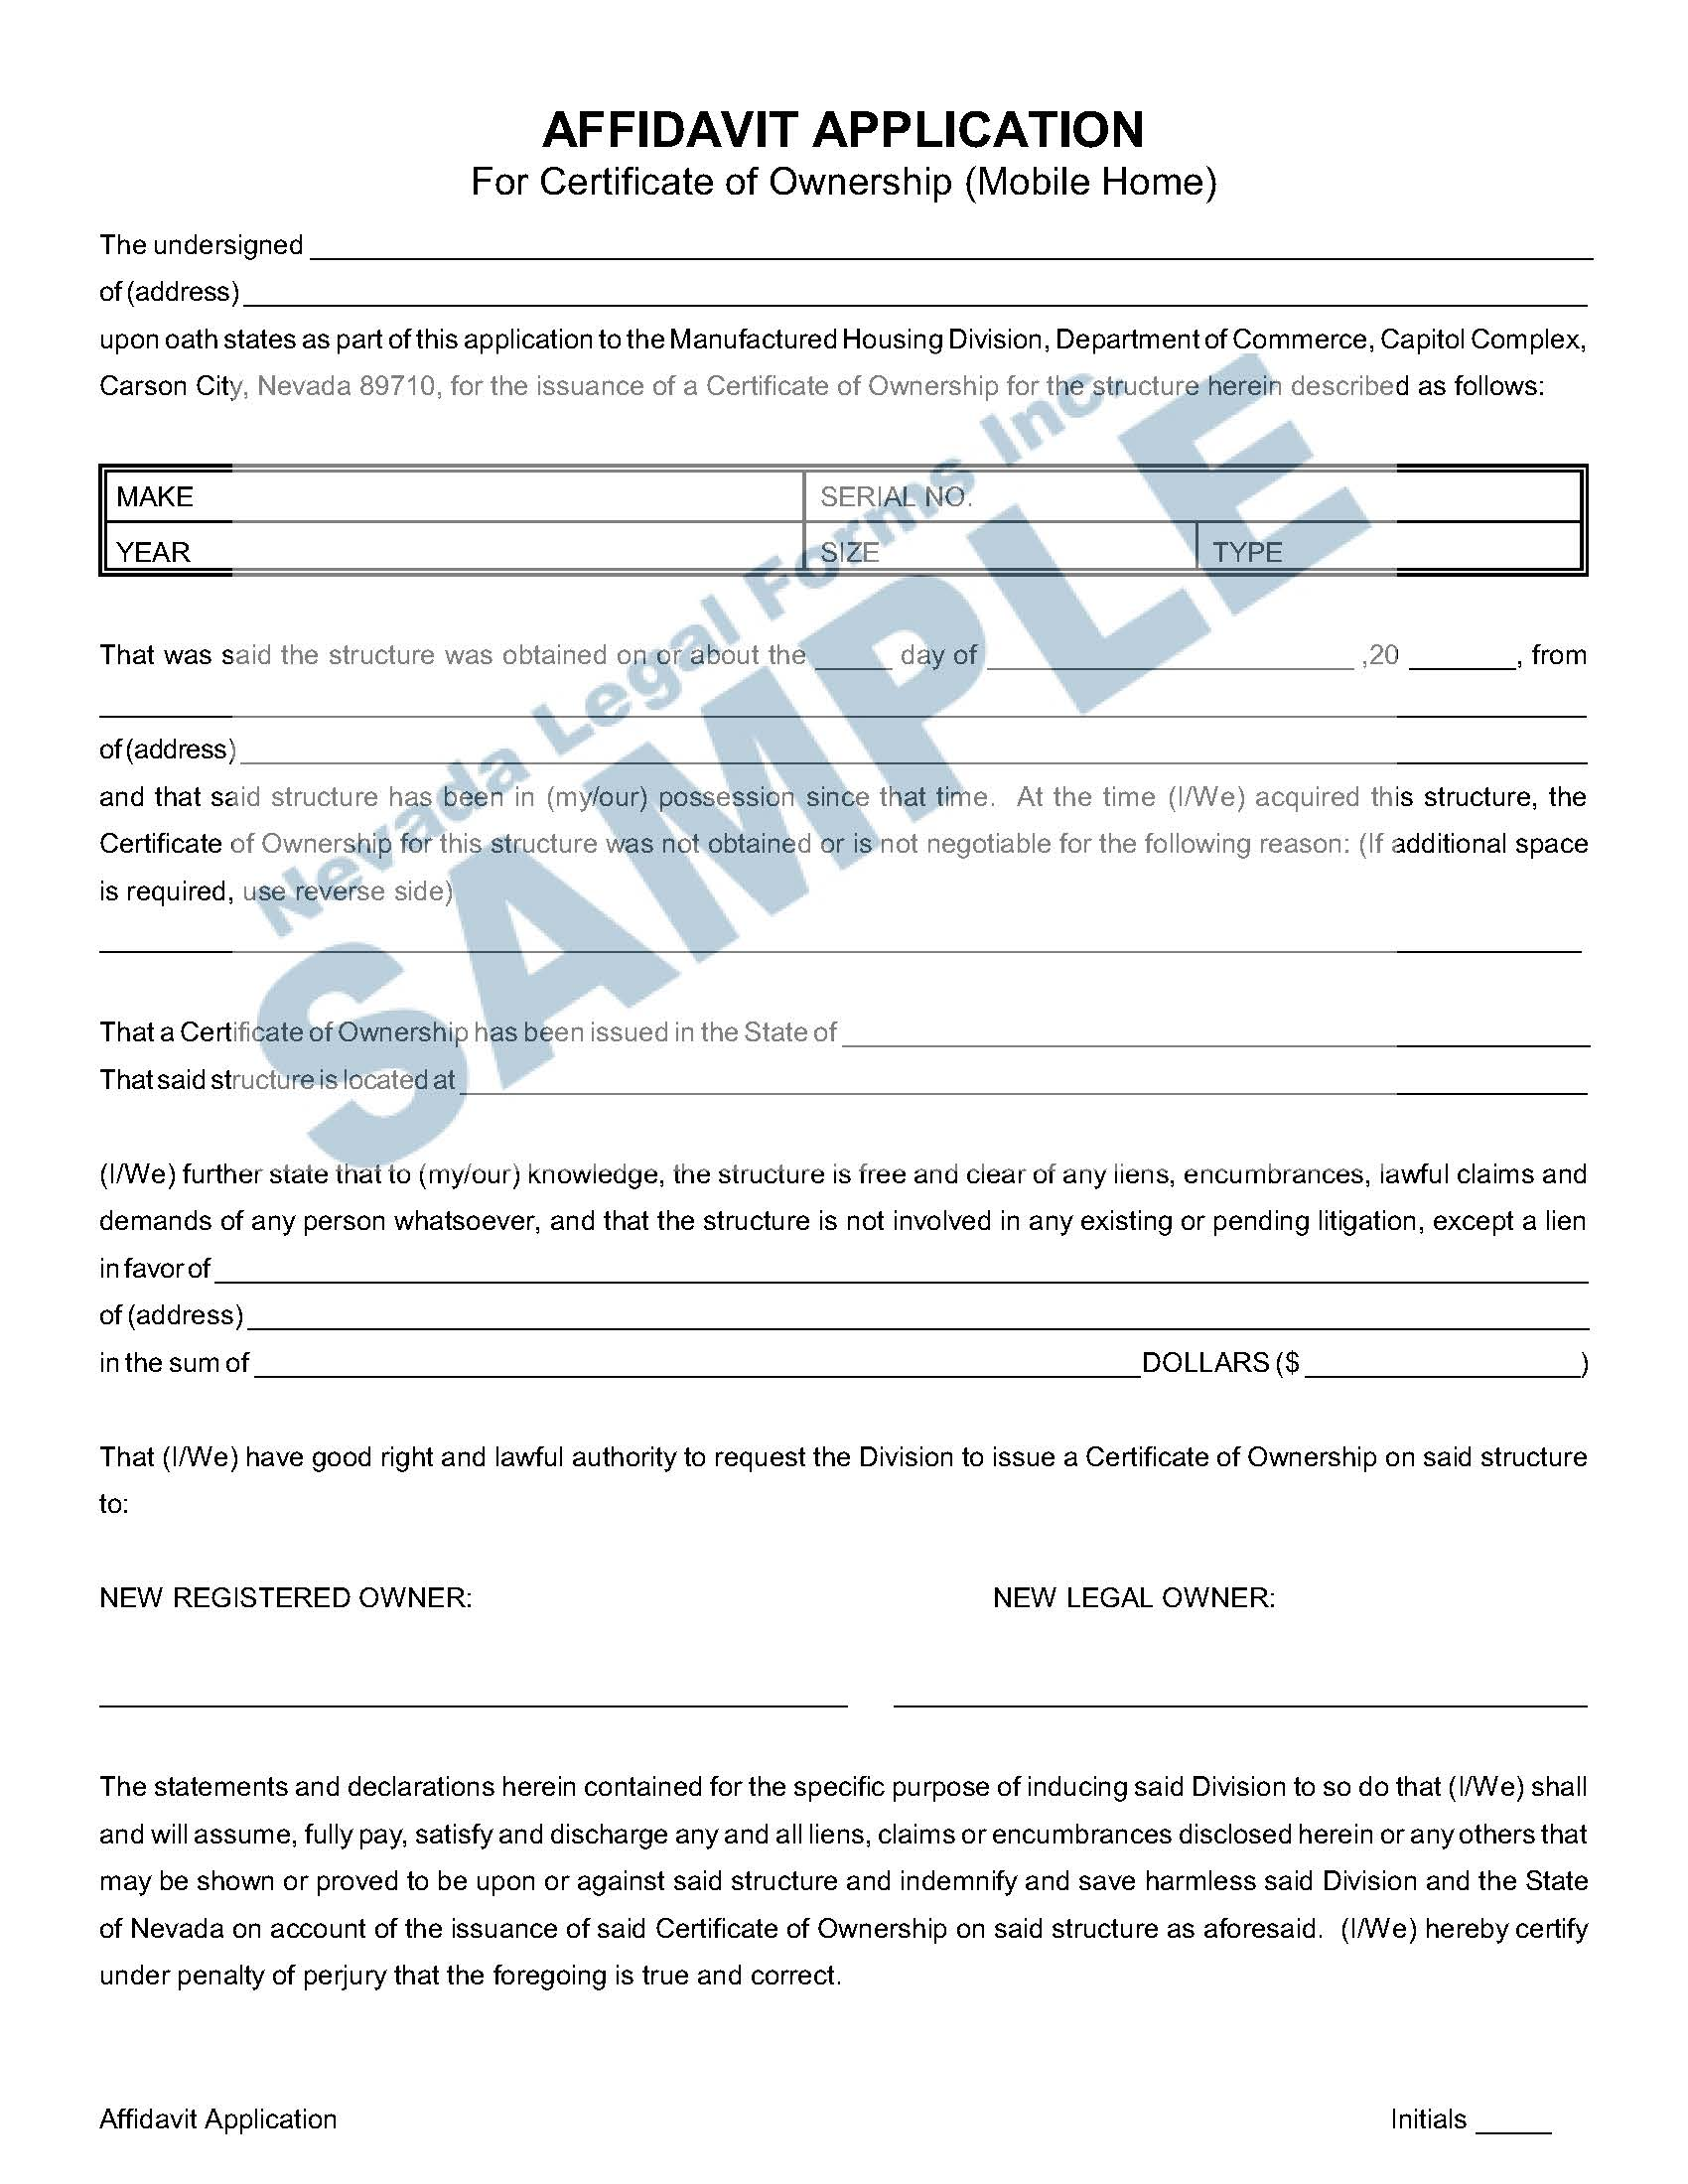 Affidavit Application For Certificate Of Ownership Mobile